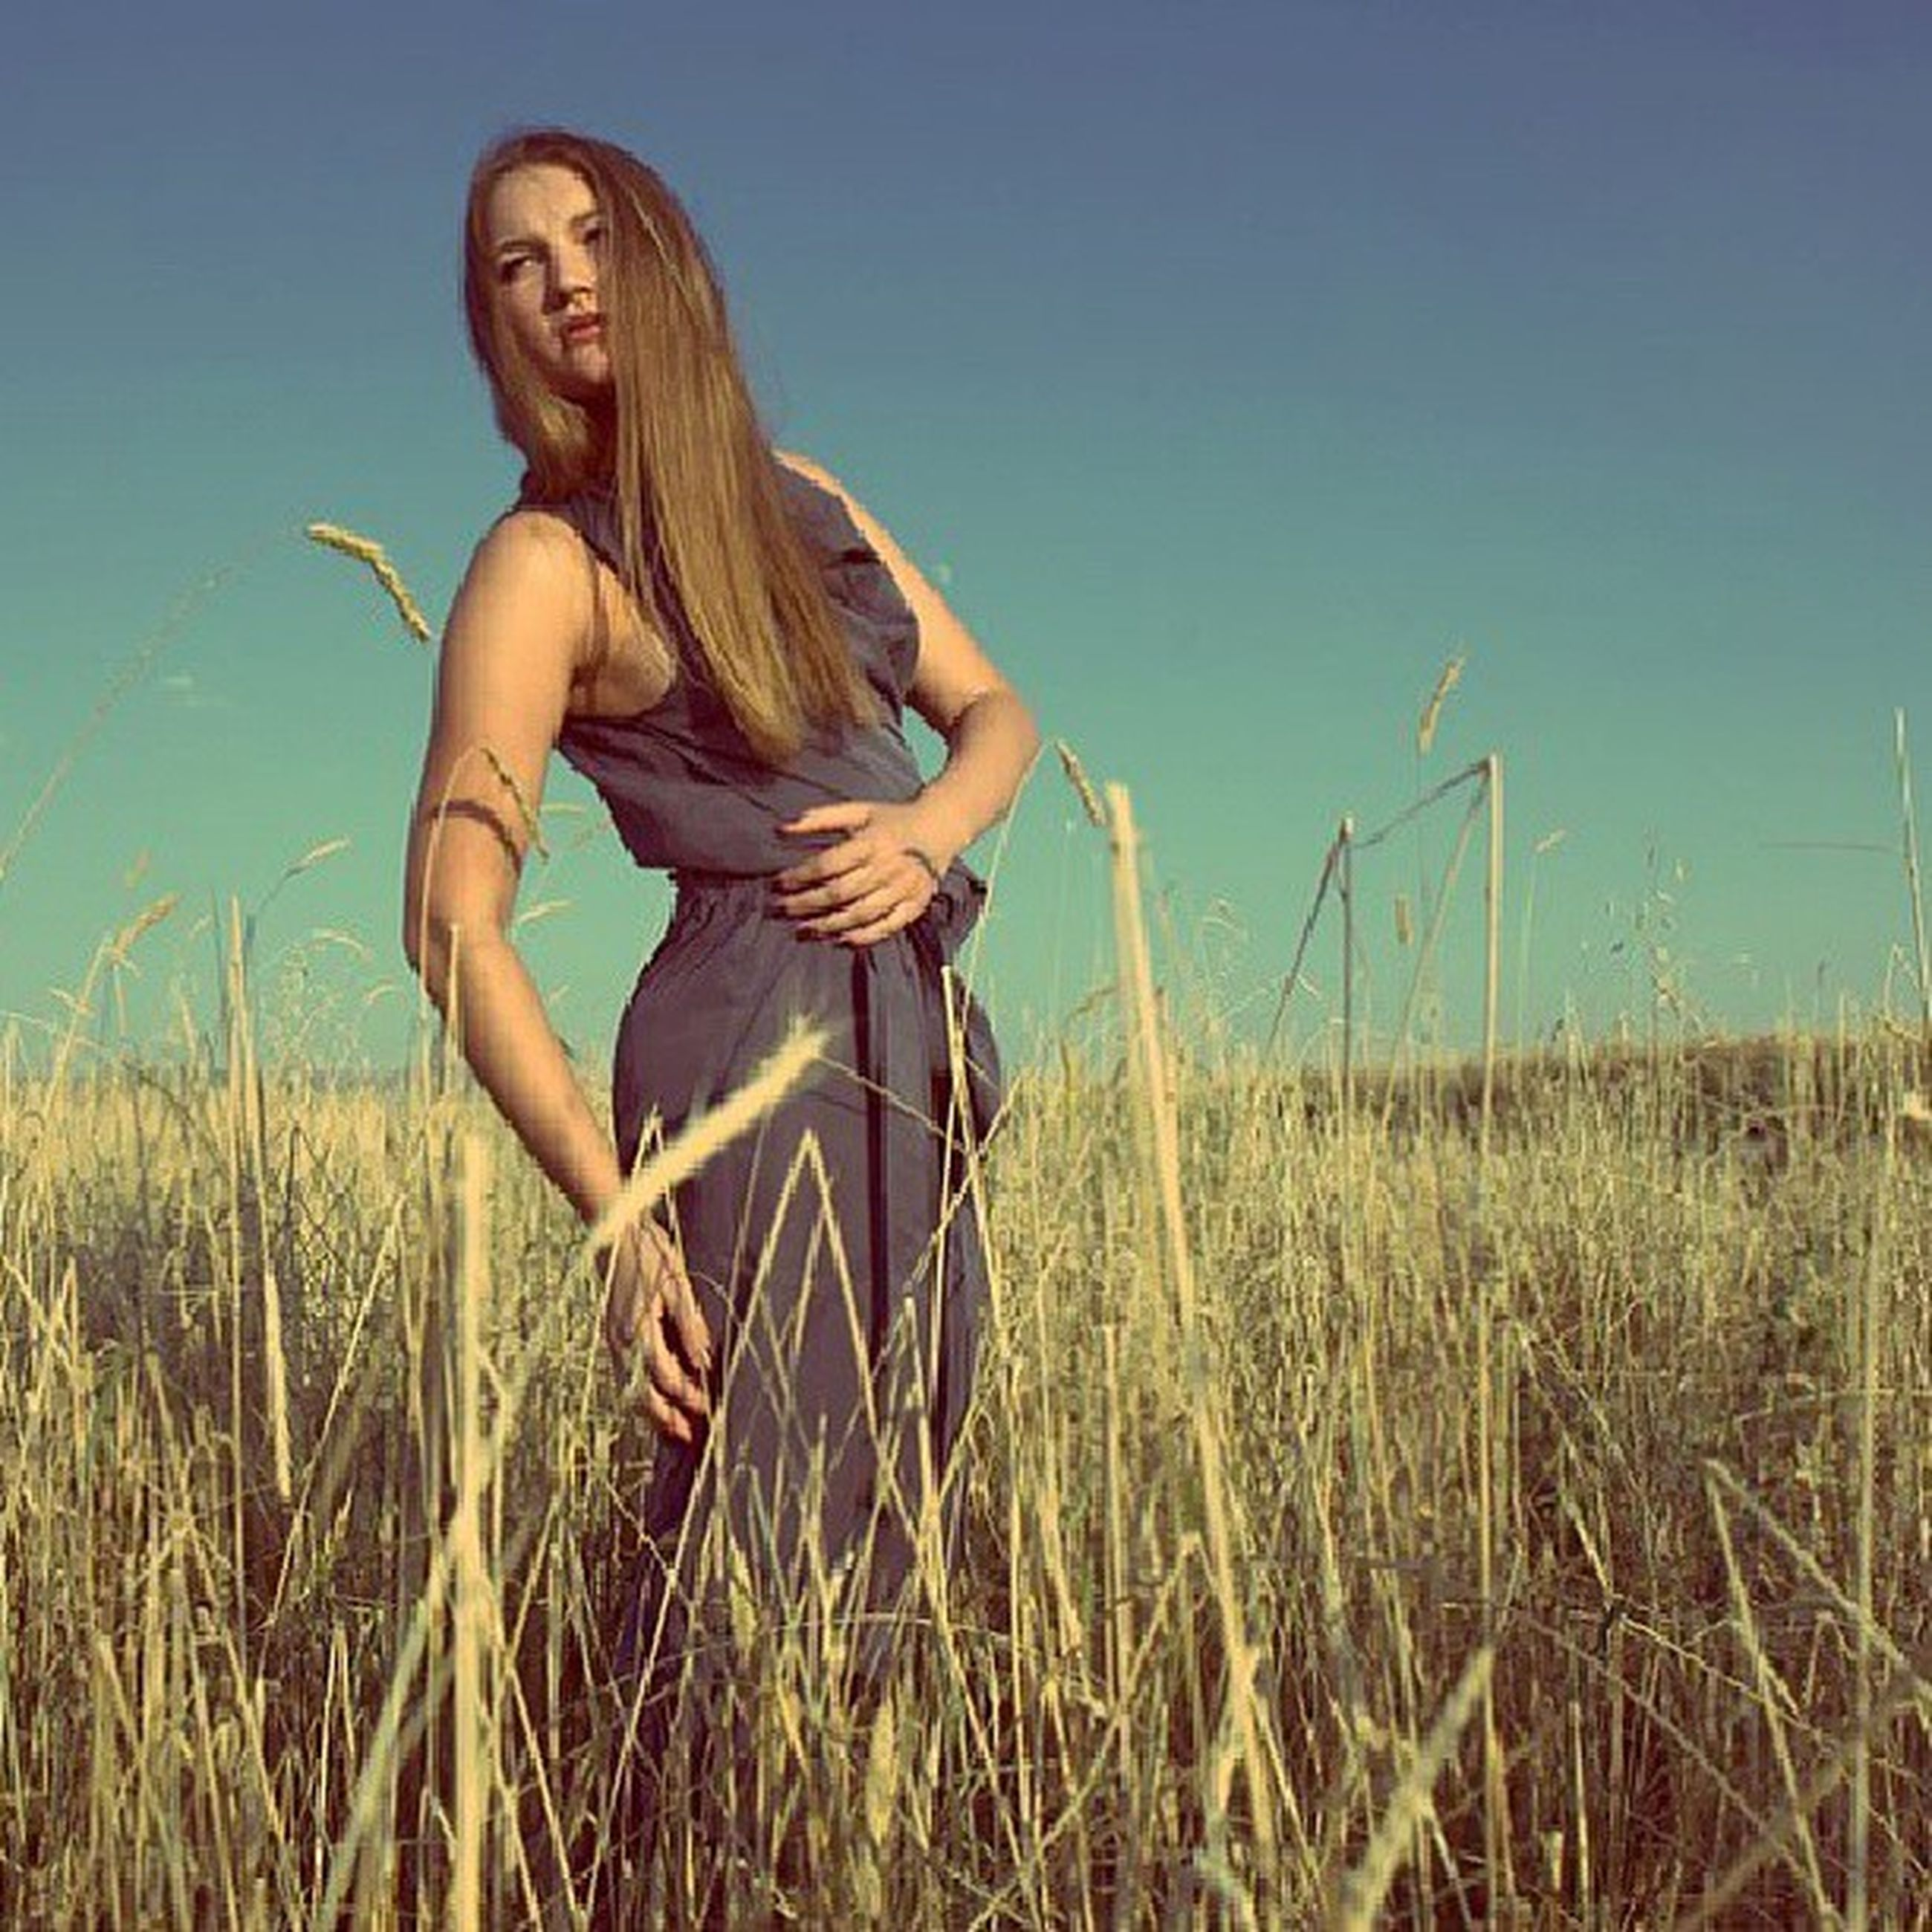 grass, lifestyles, leisure activity, young adult, person, casual clothing, full length, field, young women, three quarter length, standing, long hair, plant, grassy, clear sky, sky, nature, landscape